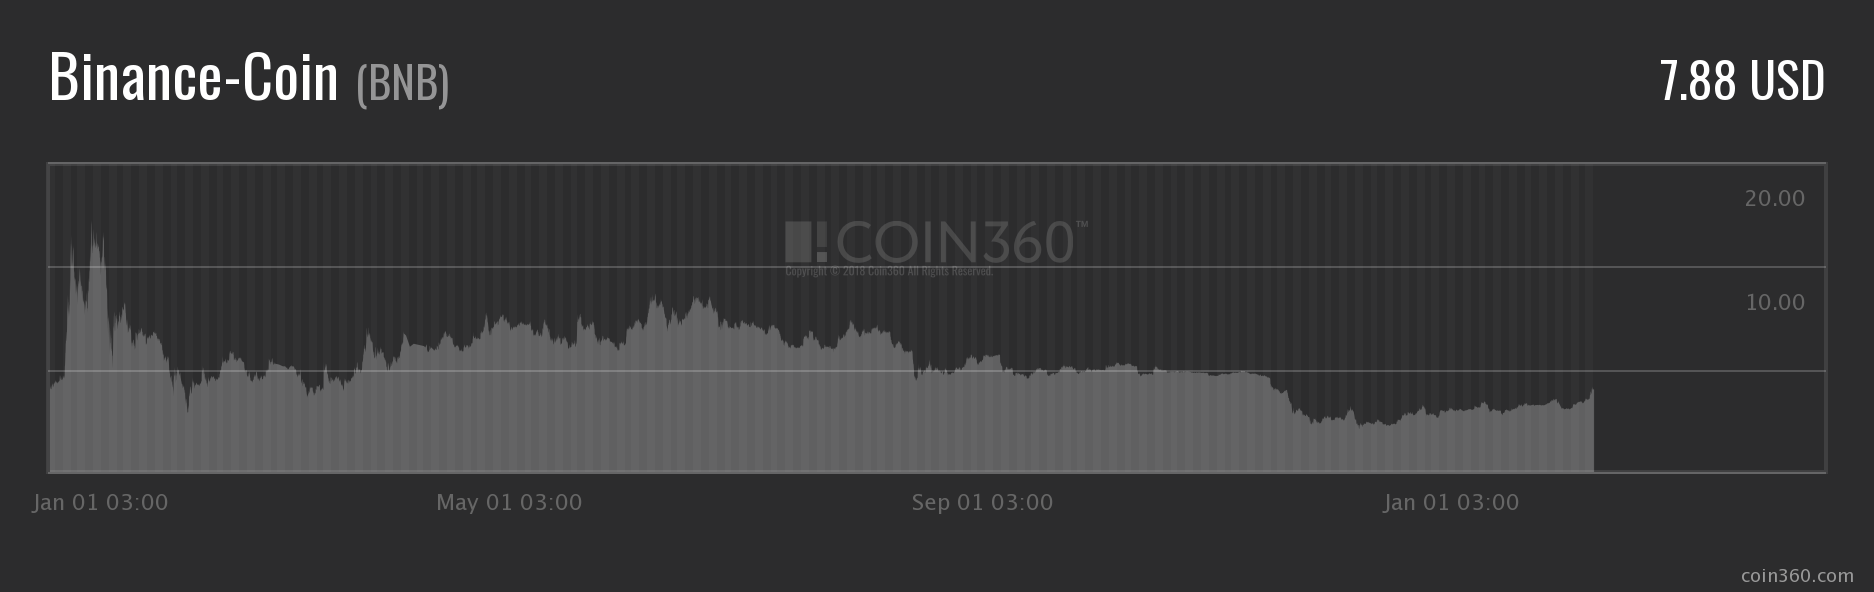 BNB coin price in 2018 year